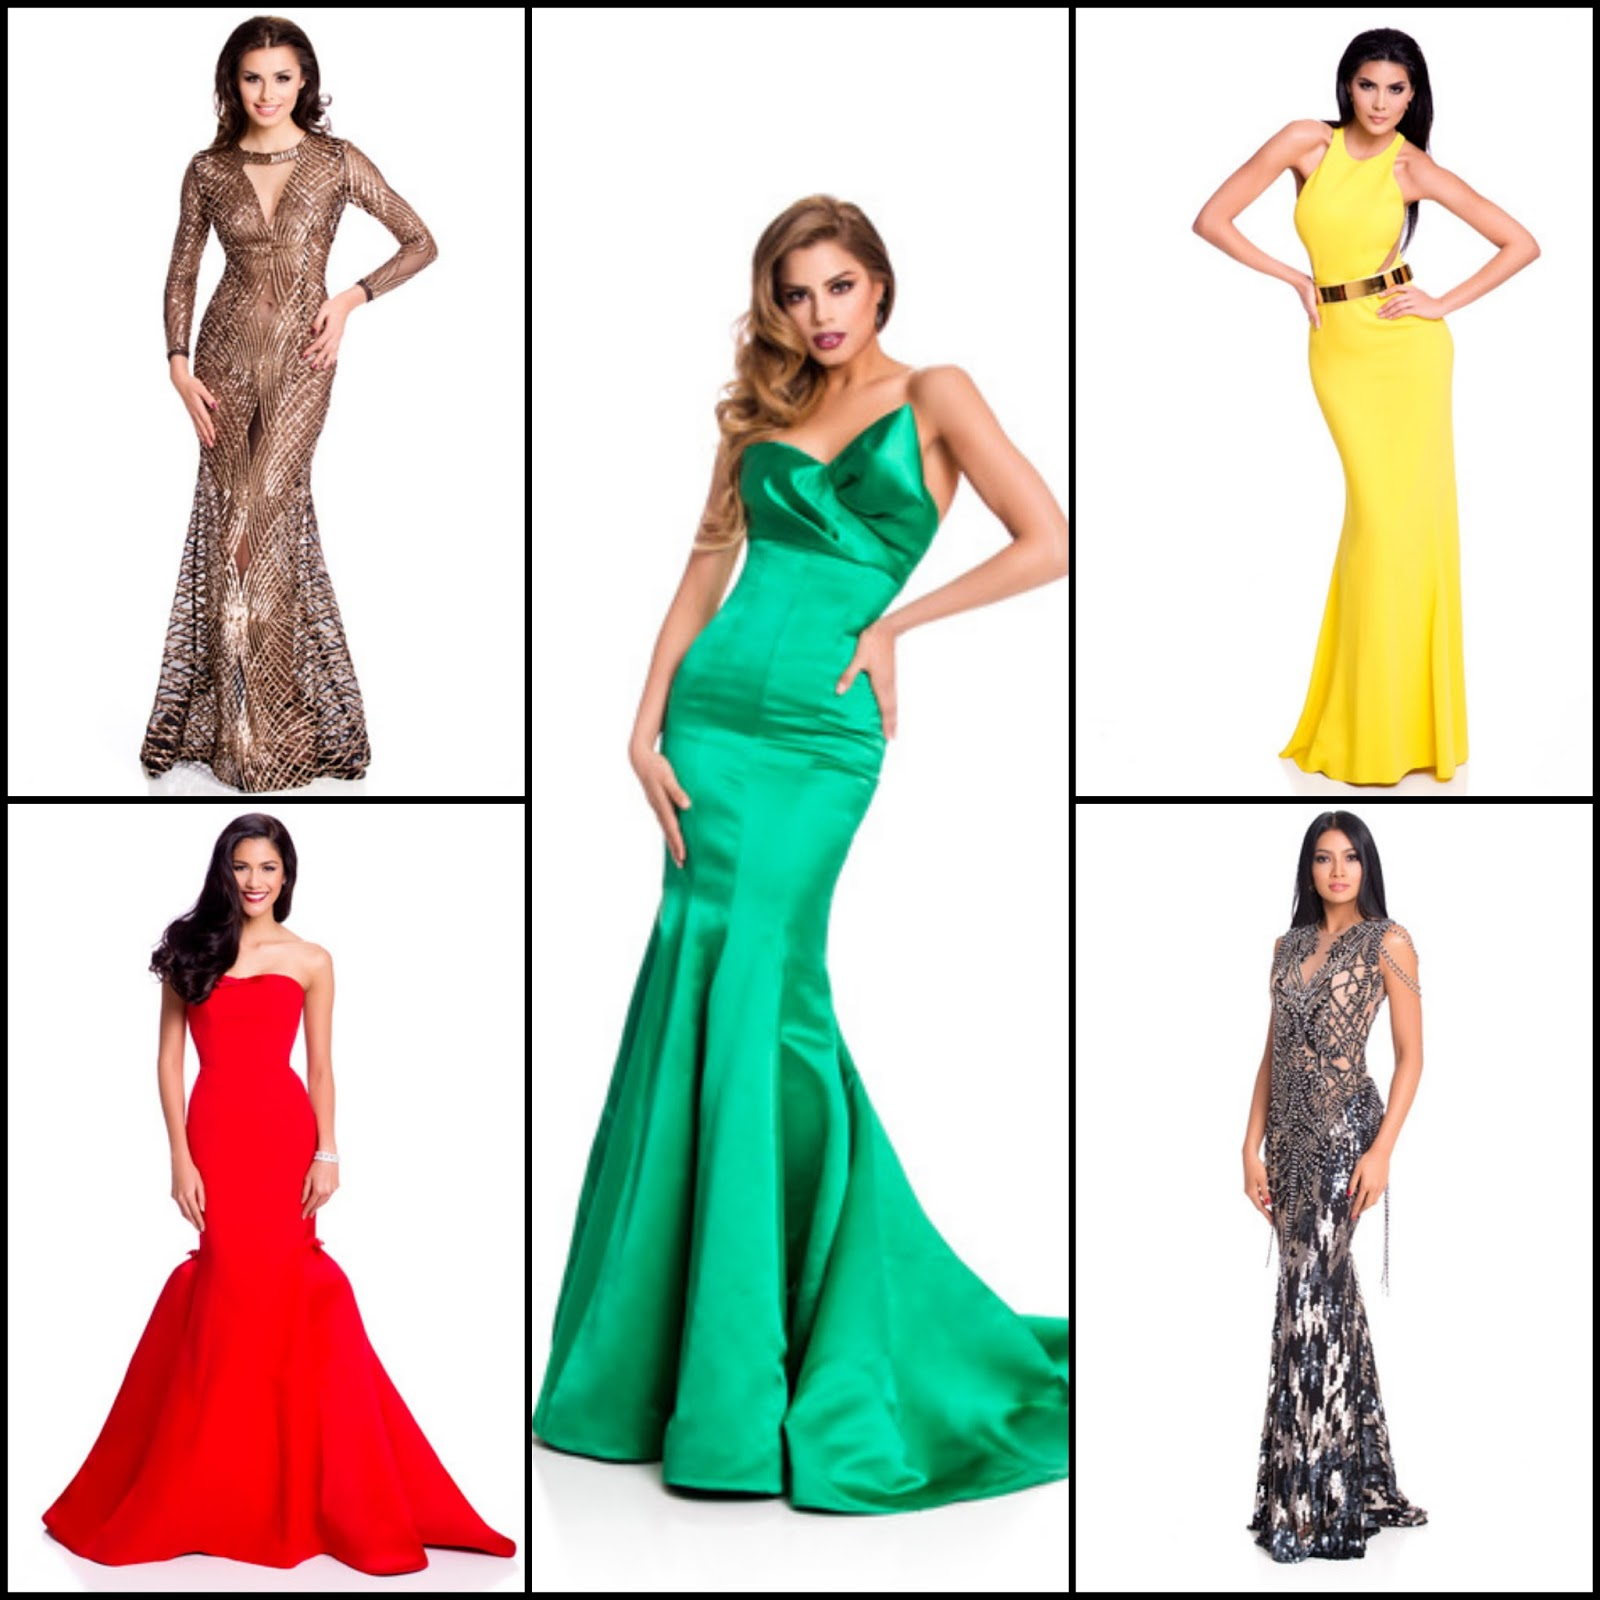 1600x1600 Sashes And Tiaras Miss Universe 2015 Evening Gown Portraits